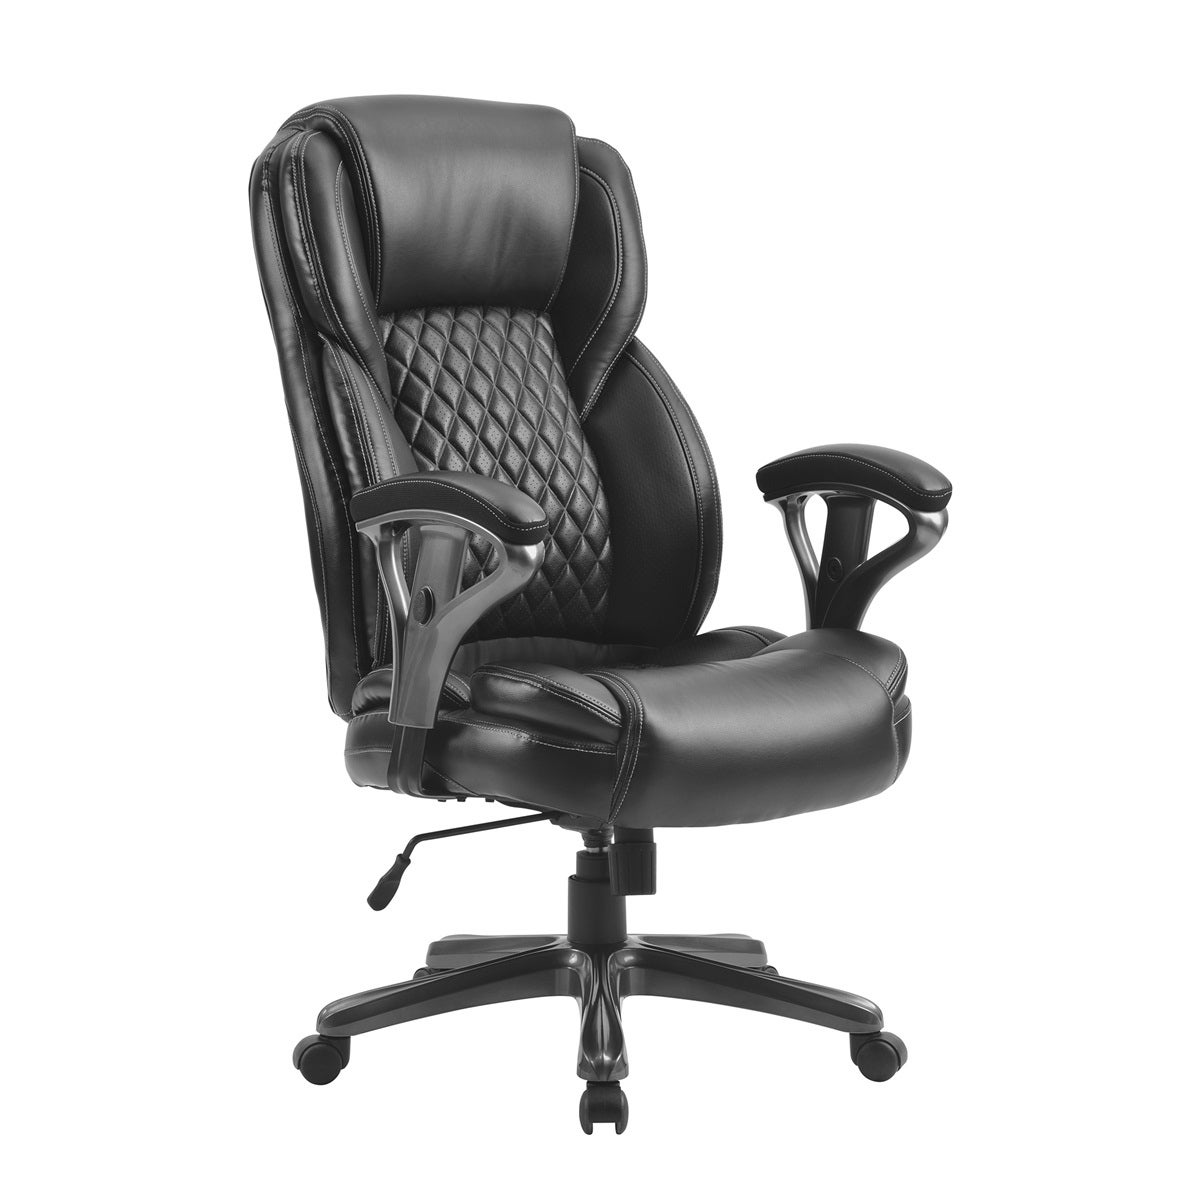 Shop Merax Big Tall Office High Back Managerial Chair Ergonomic Pu Leather Office Executive Chair For Home Office Racing Style On Sale Overstock 31887073